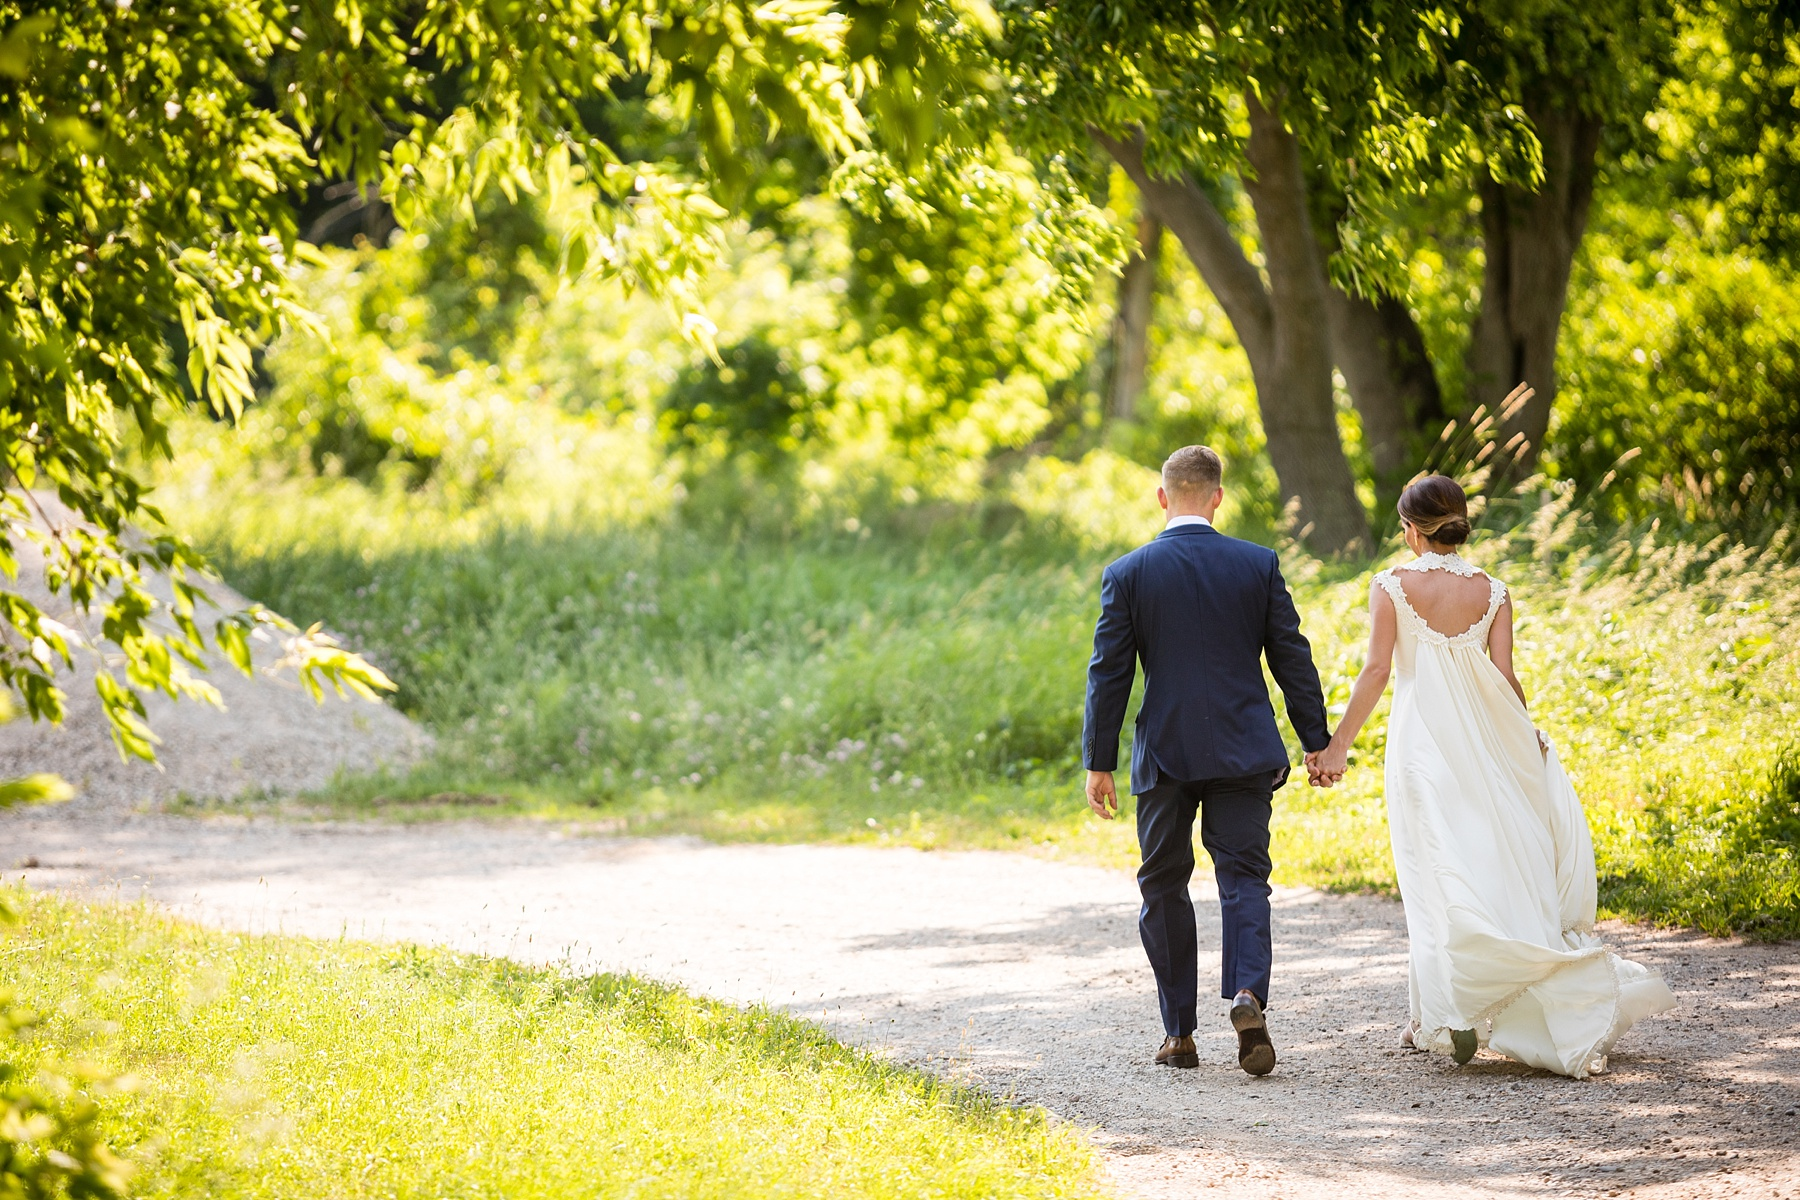 Brandon_Shafer_Photography_Traverse_City_Wedding_0044.jpg